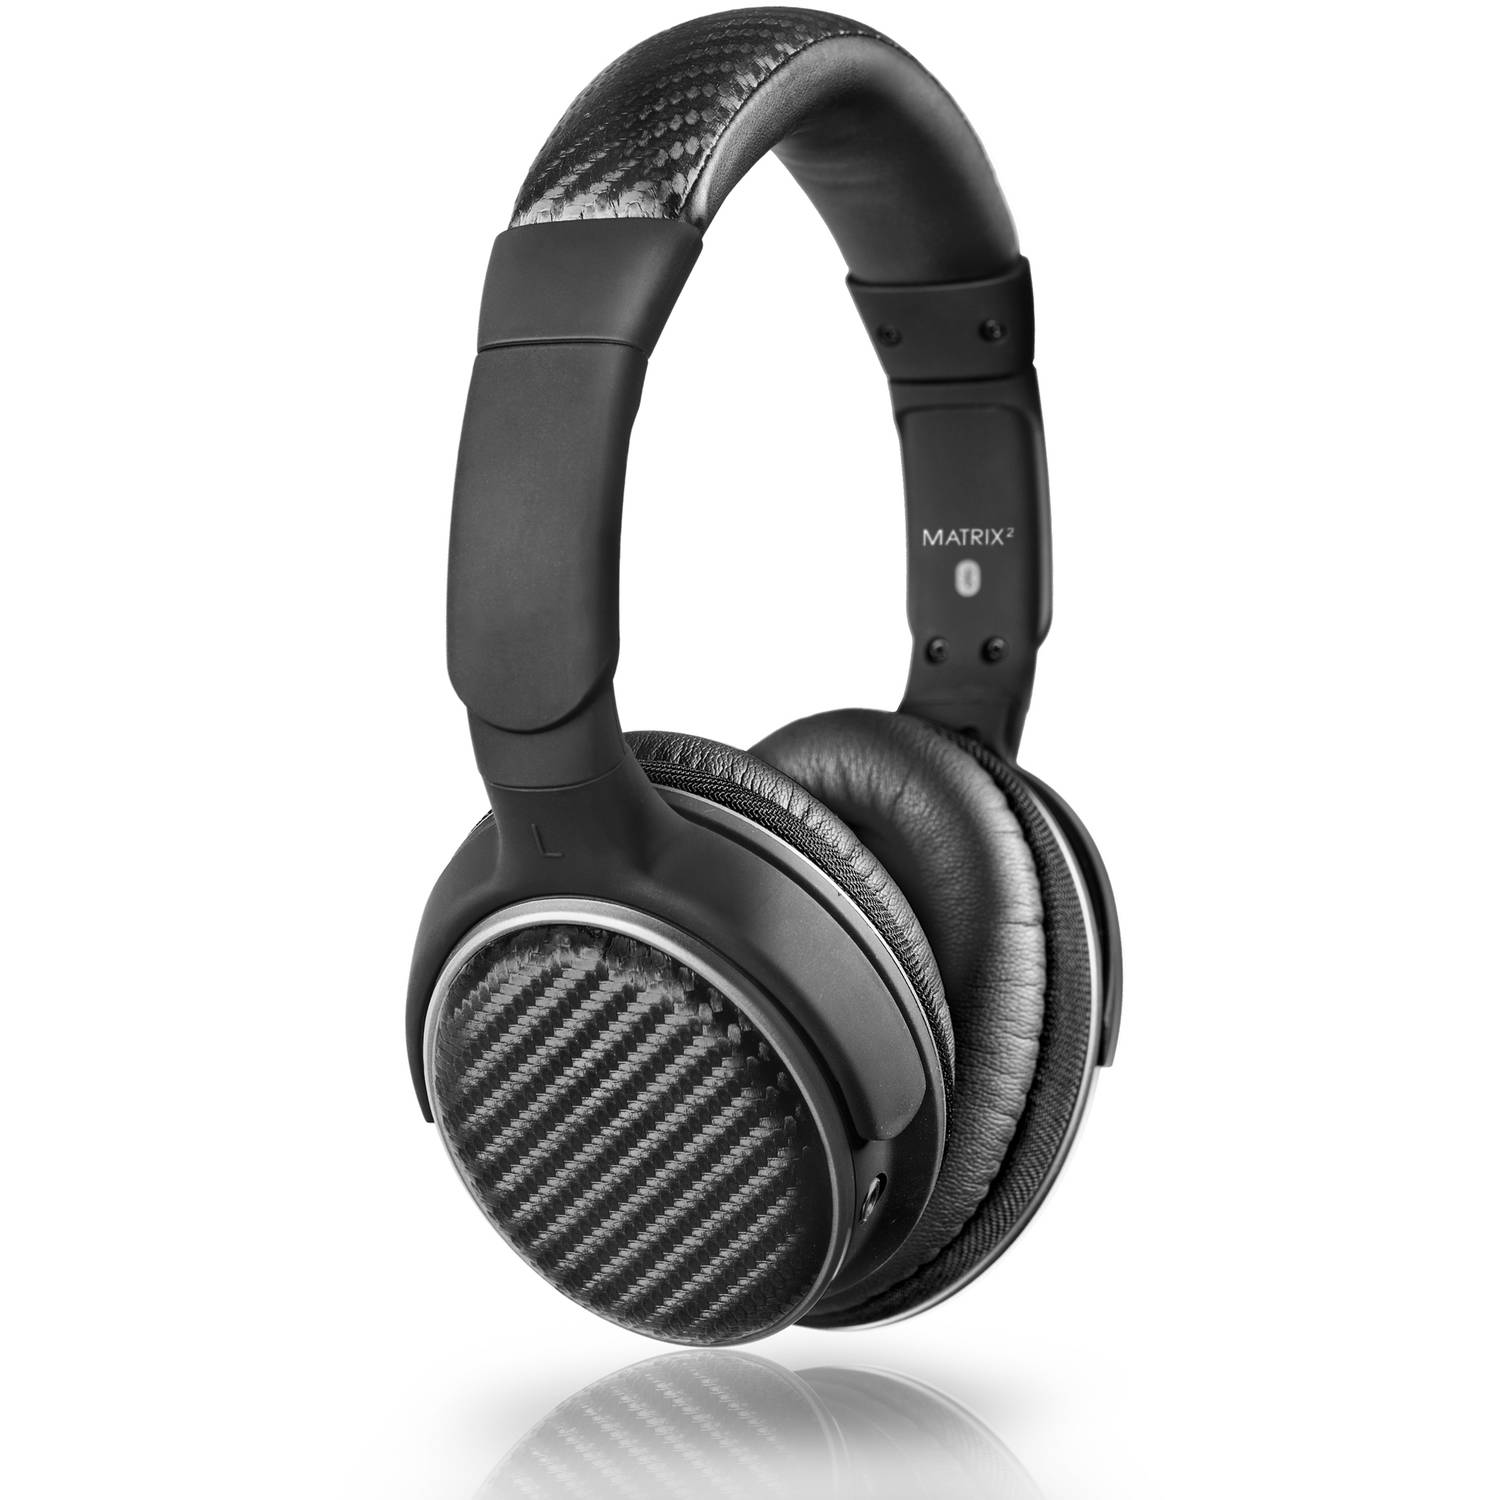 MEE audio Air-Fi Matrix2 Bluetooth Wireless + Wired High-Fidelity Headphones with Headset and aptX, AAC and NFC Support